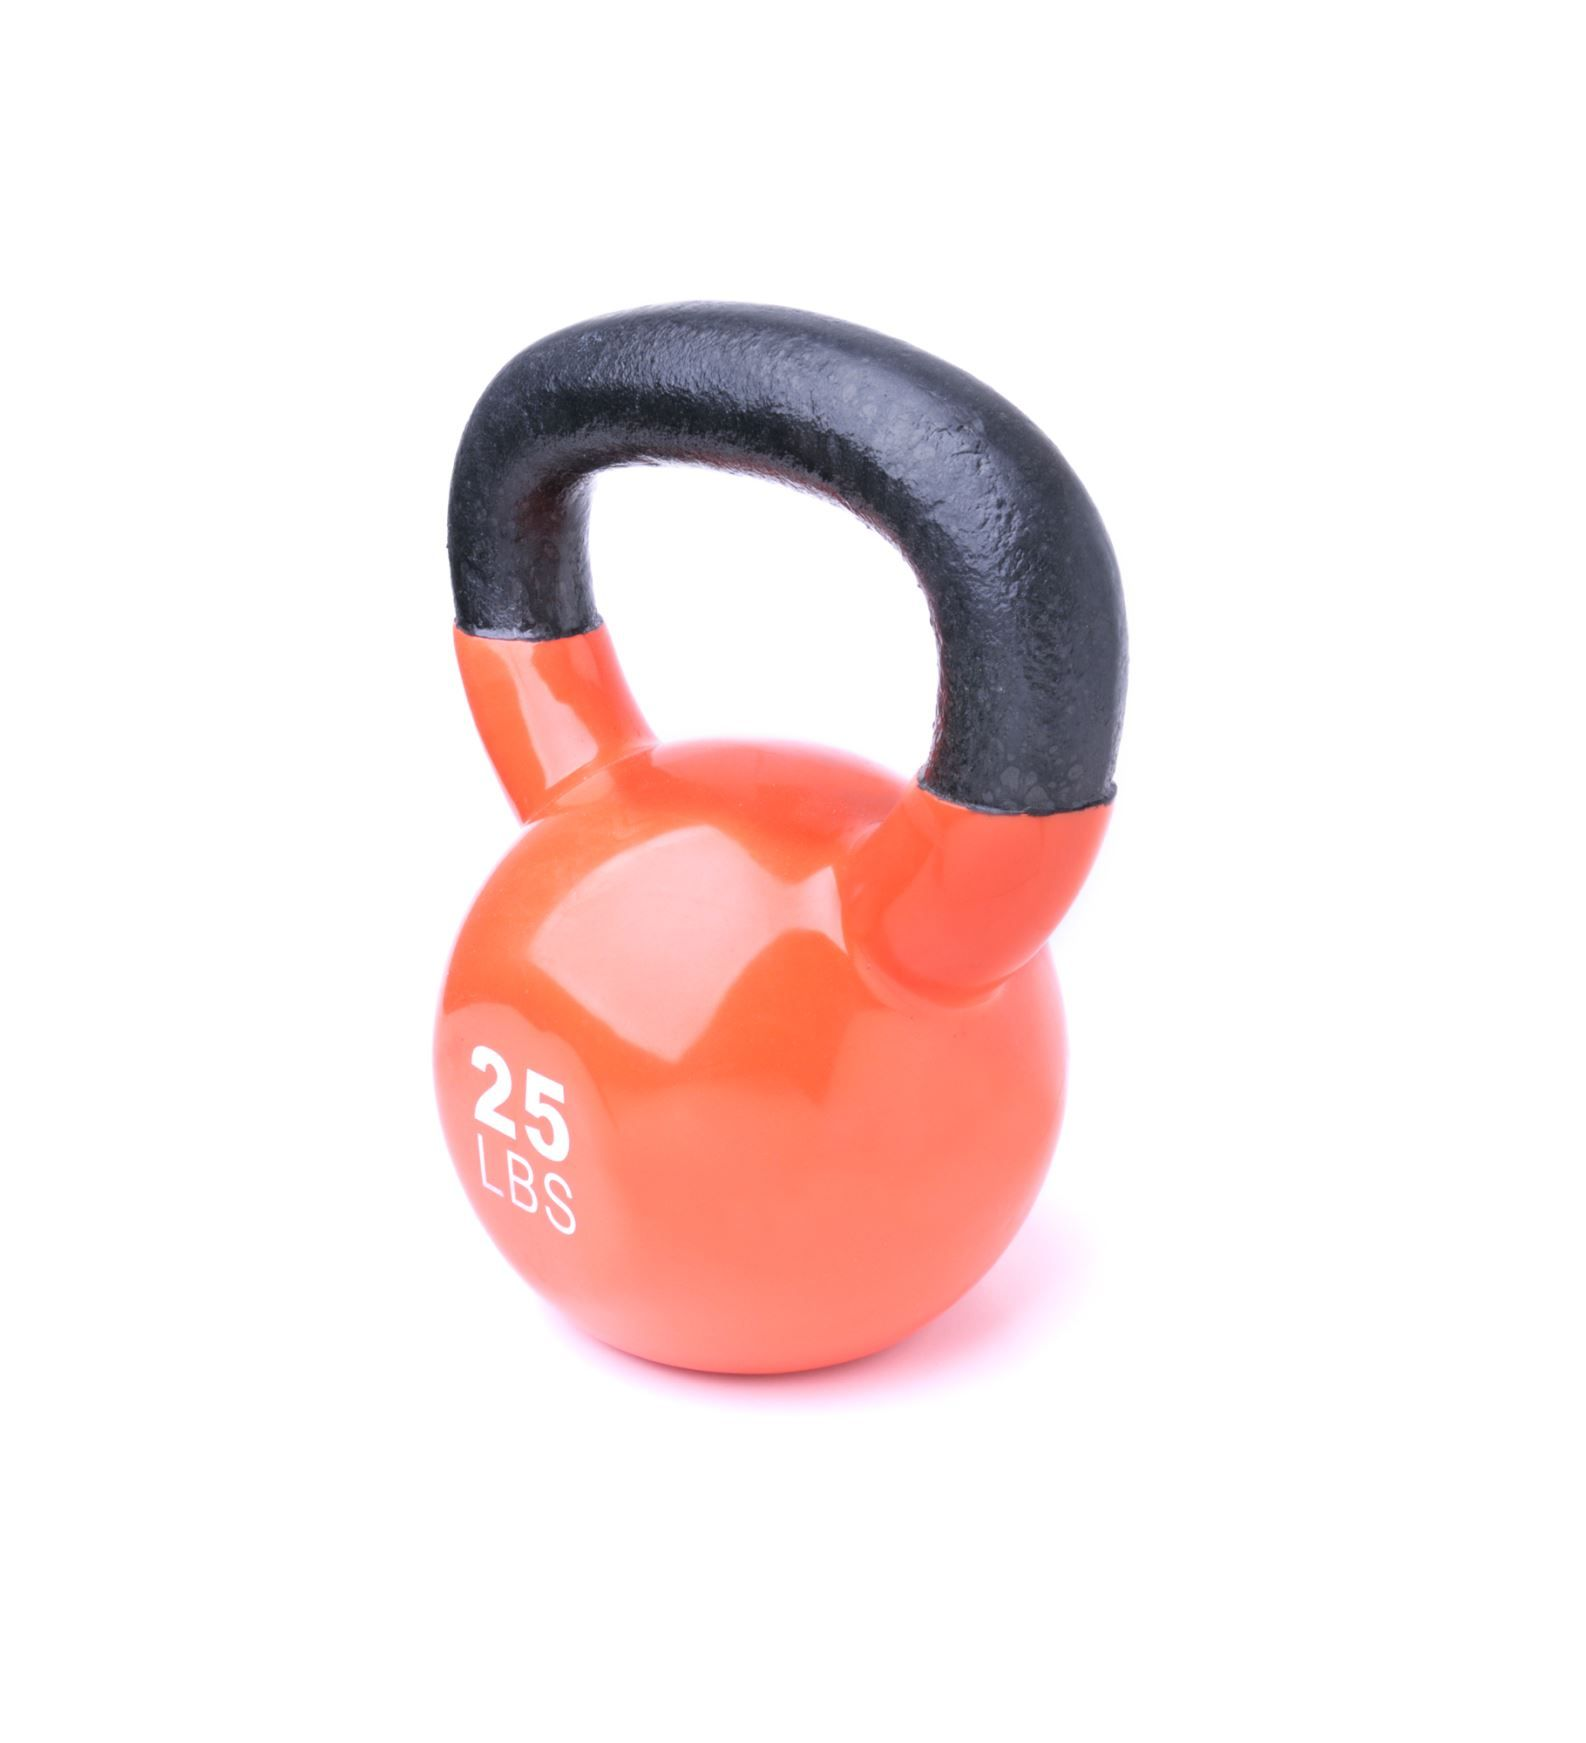 #3 Get serious about kettlebells  If you want to build core strength fast, grab those cannonballs with handles. In a University of Wisconsin study, two hour-long kettlebell workouts a week increased participants' core strength by 70 percent after eight weeks.